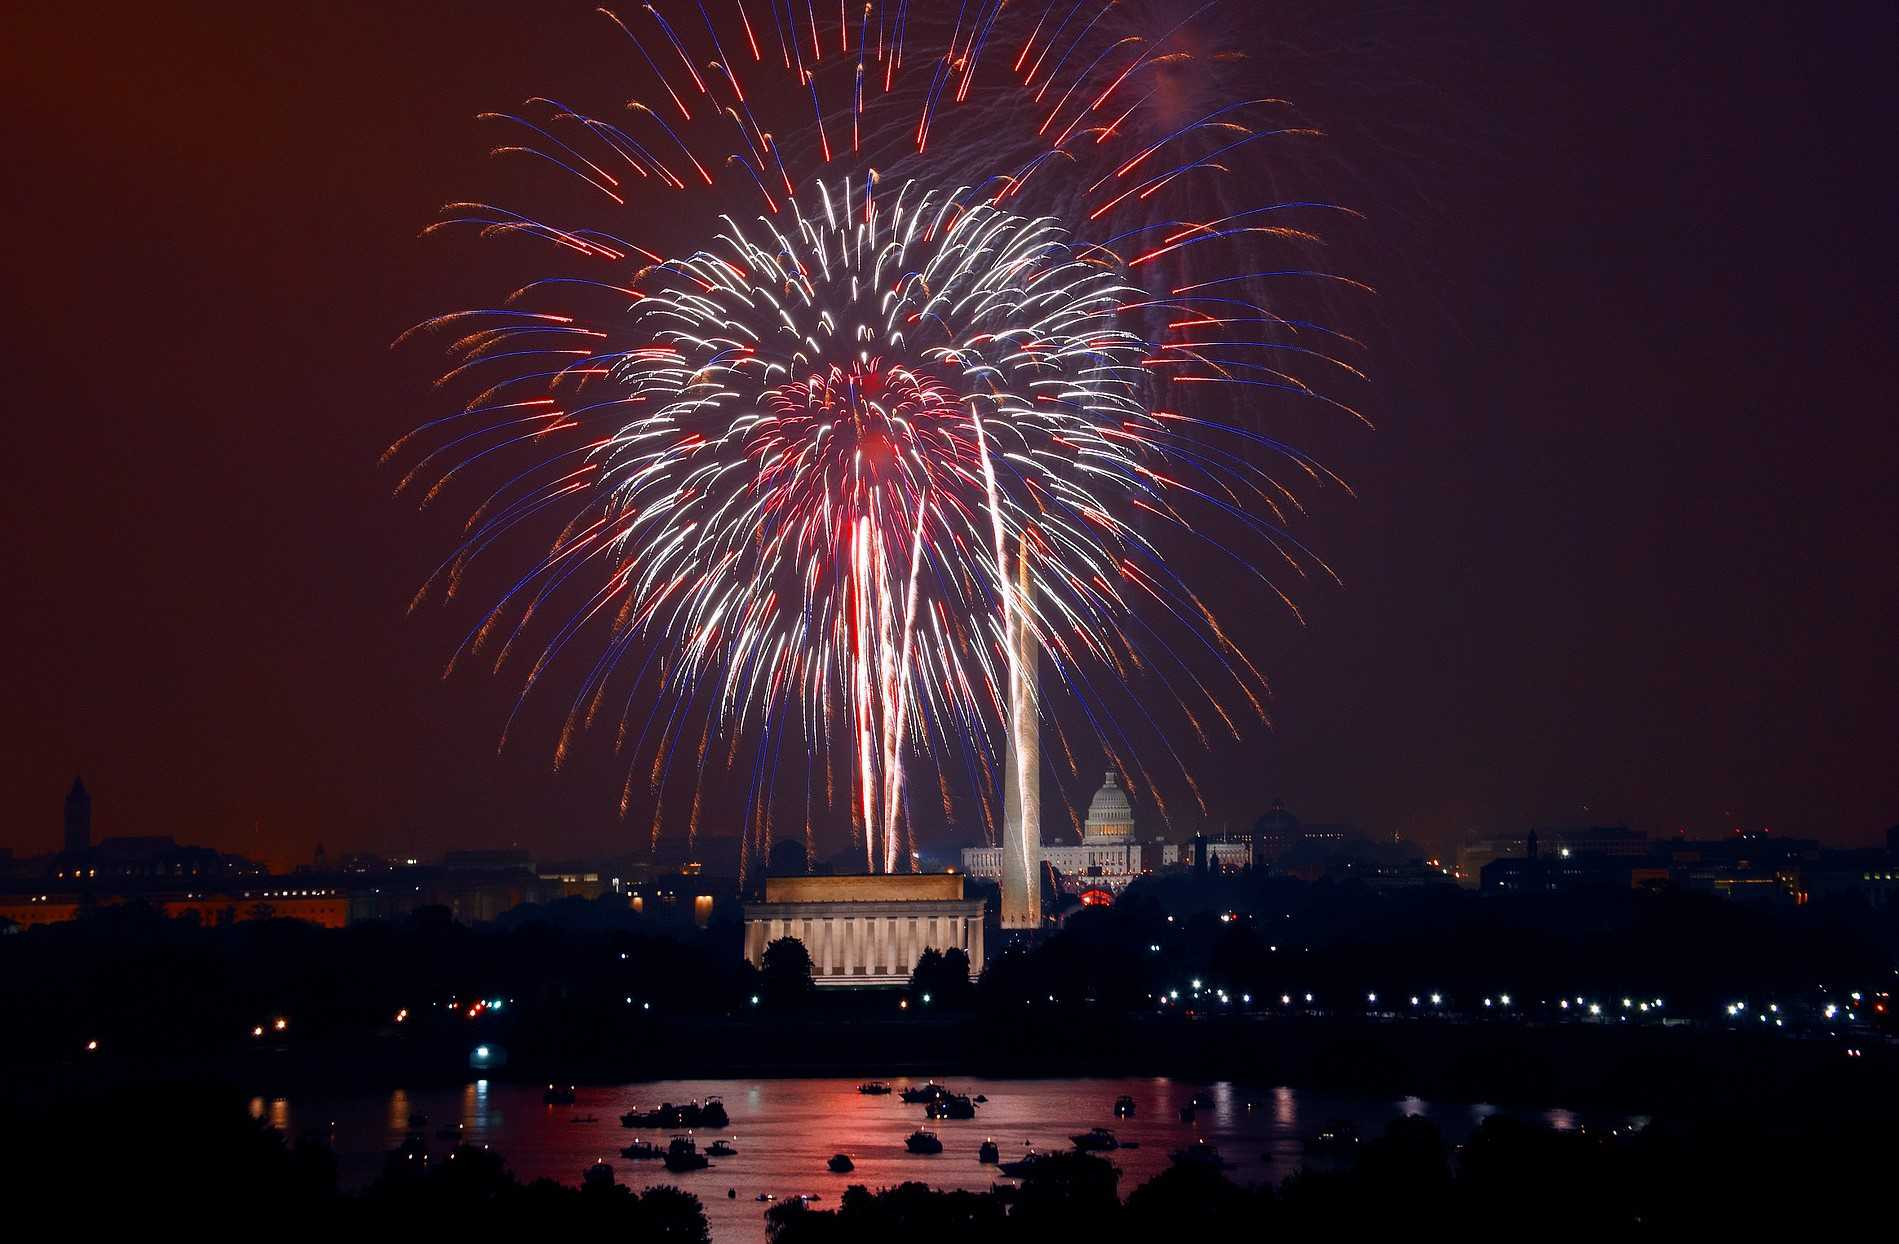 Fireworks Display in New Year's Eve | Goodwill Car Donations